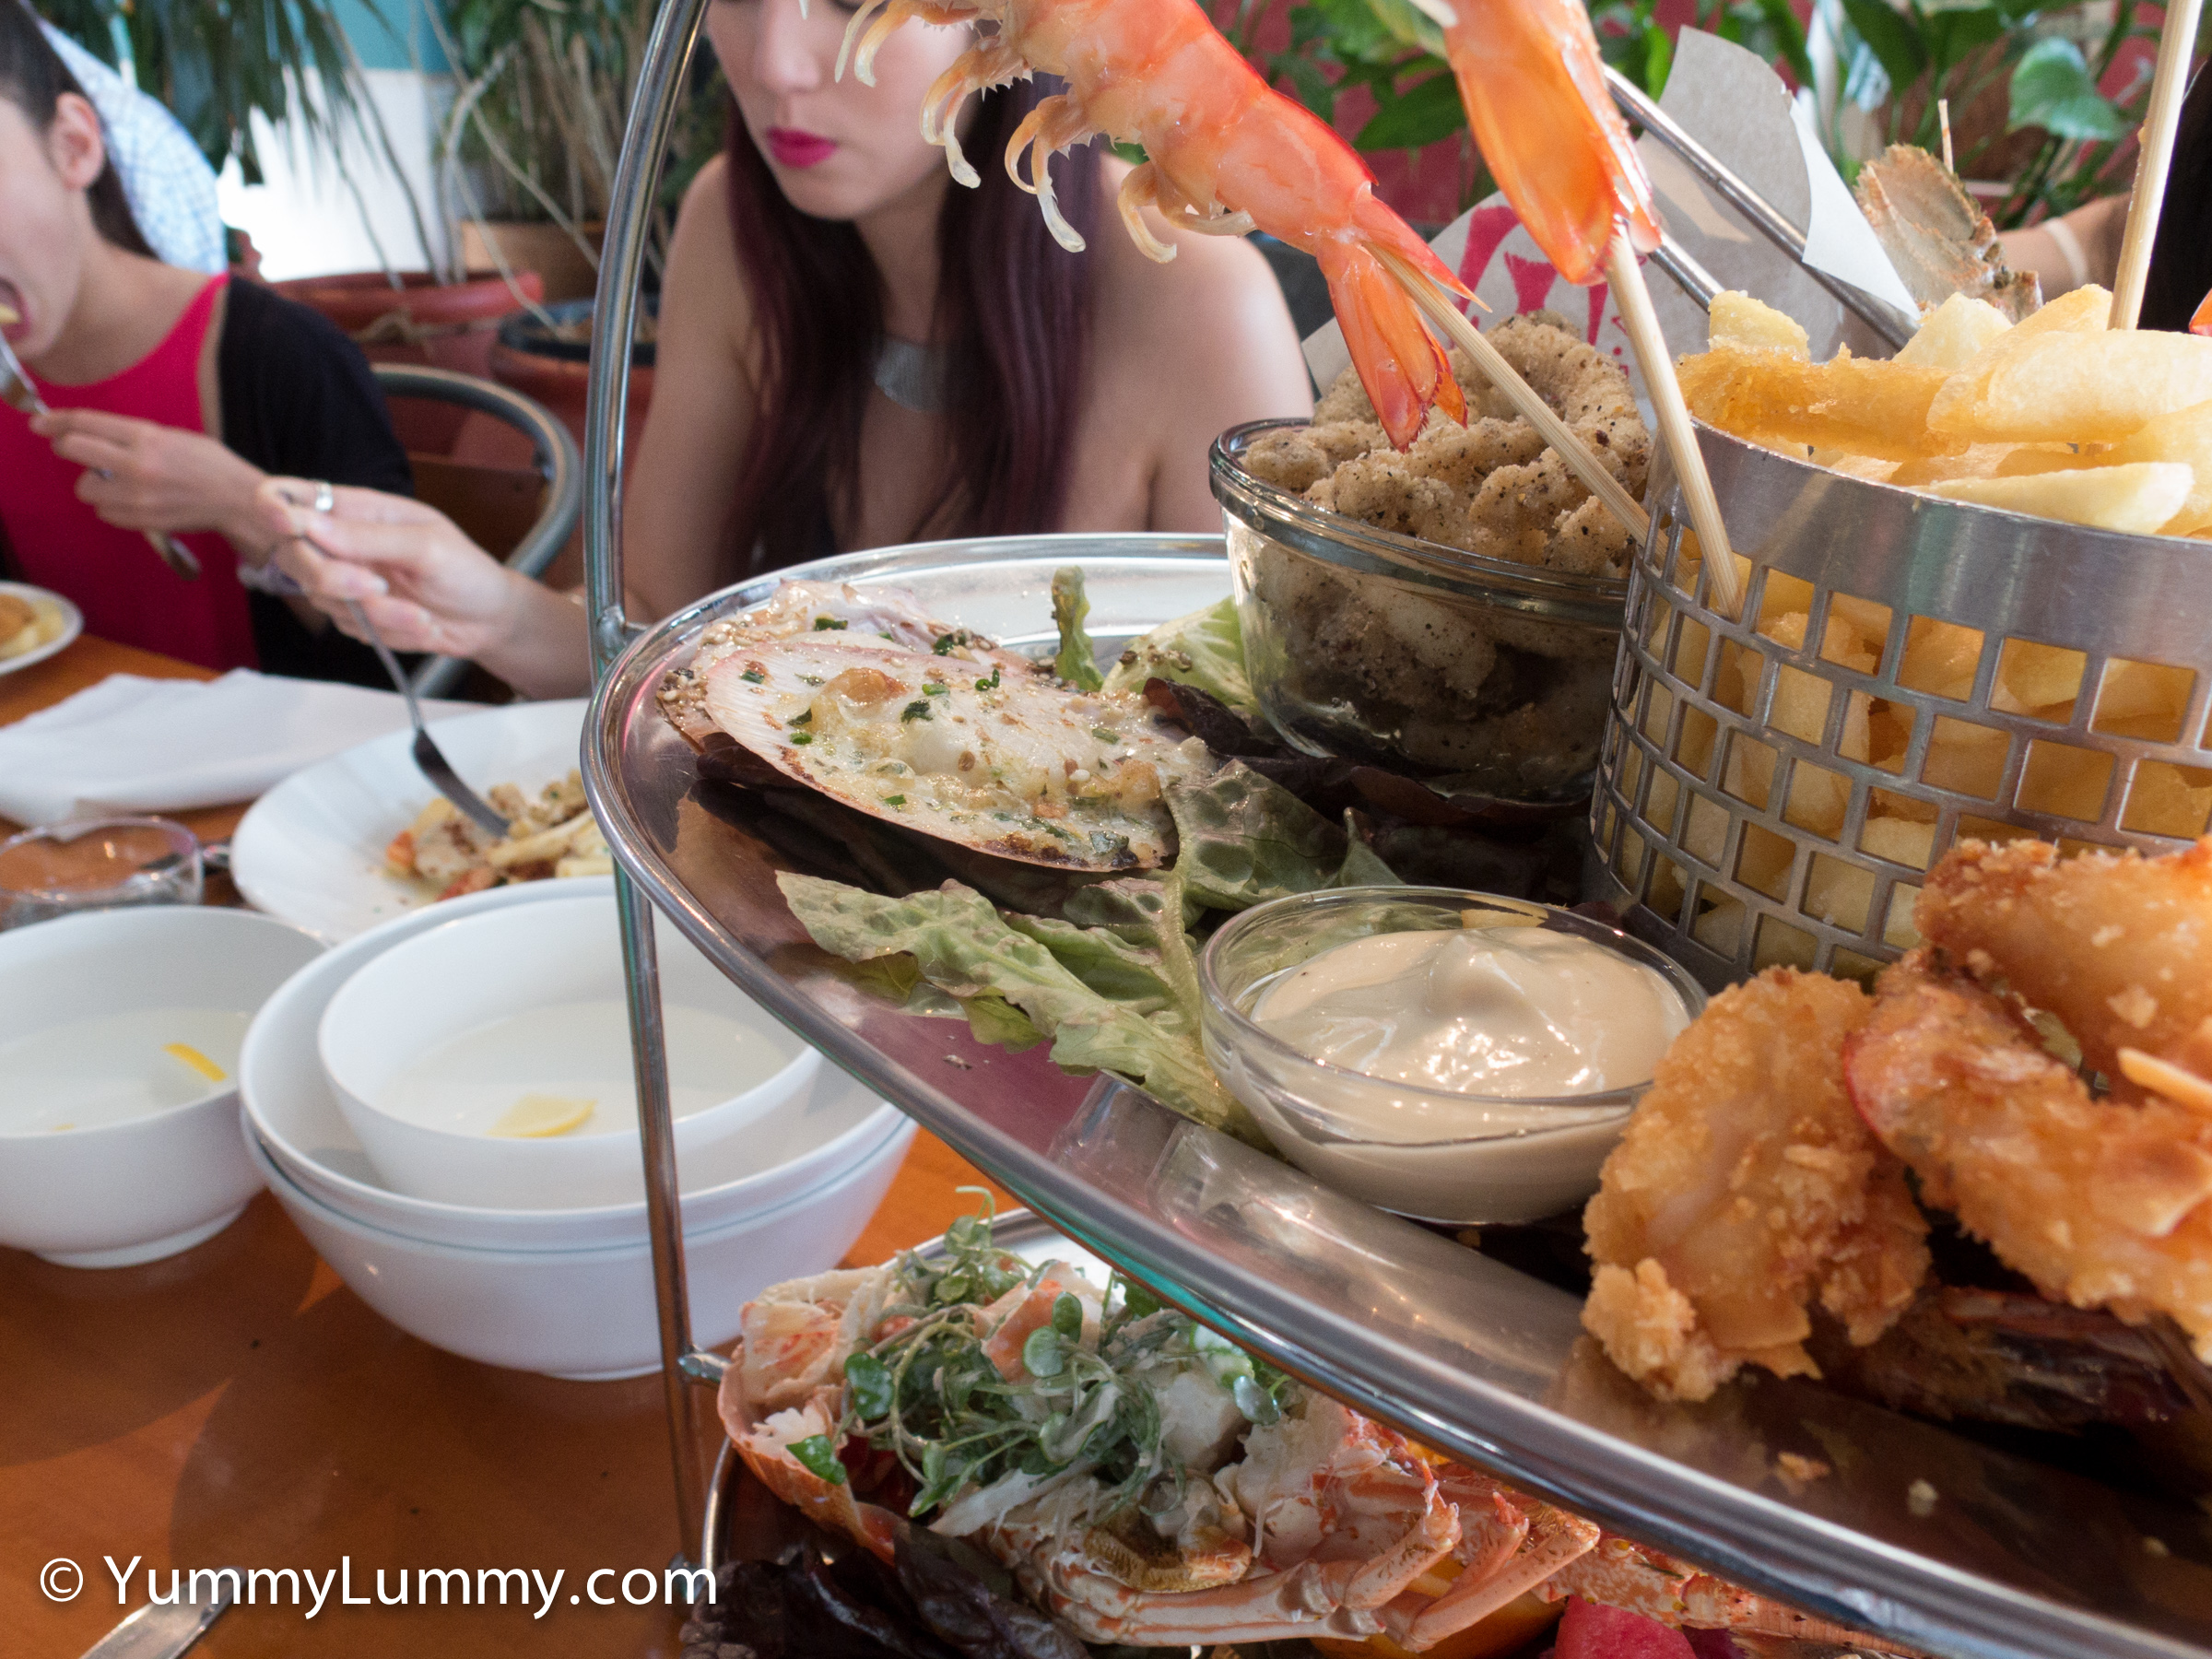 Grilled seafood on the Moreton Bay platter